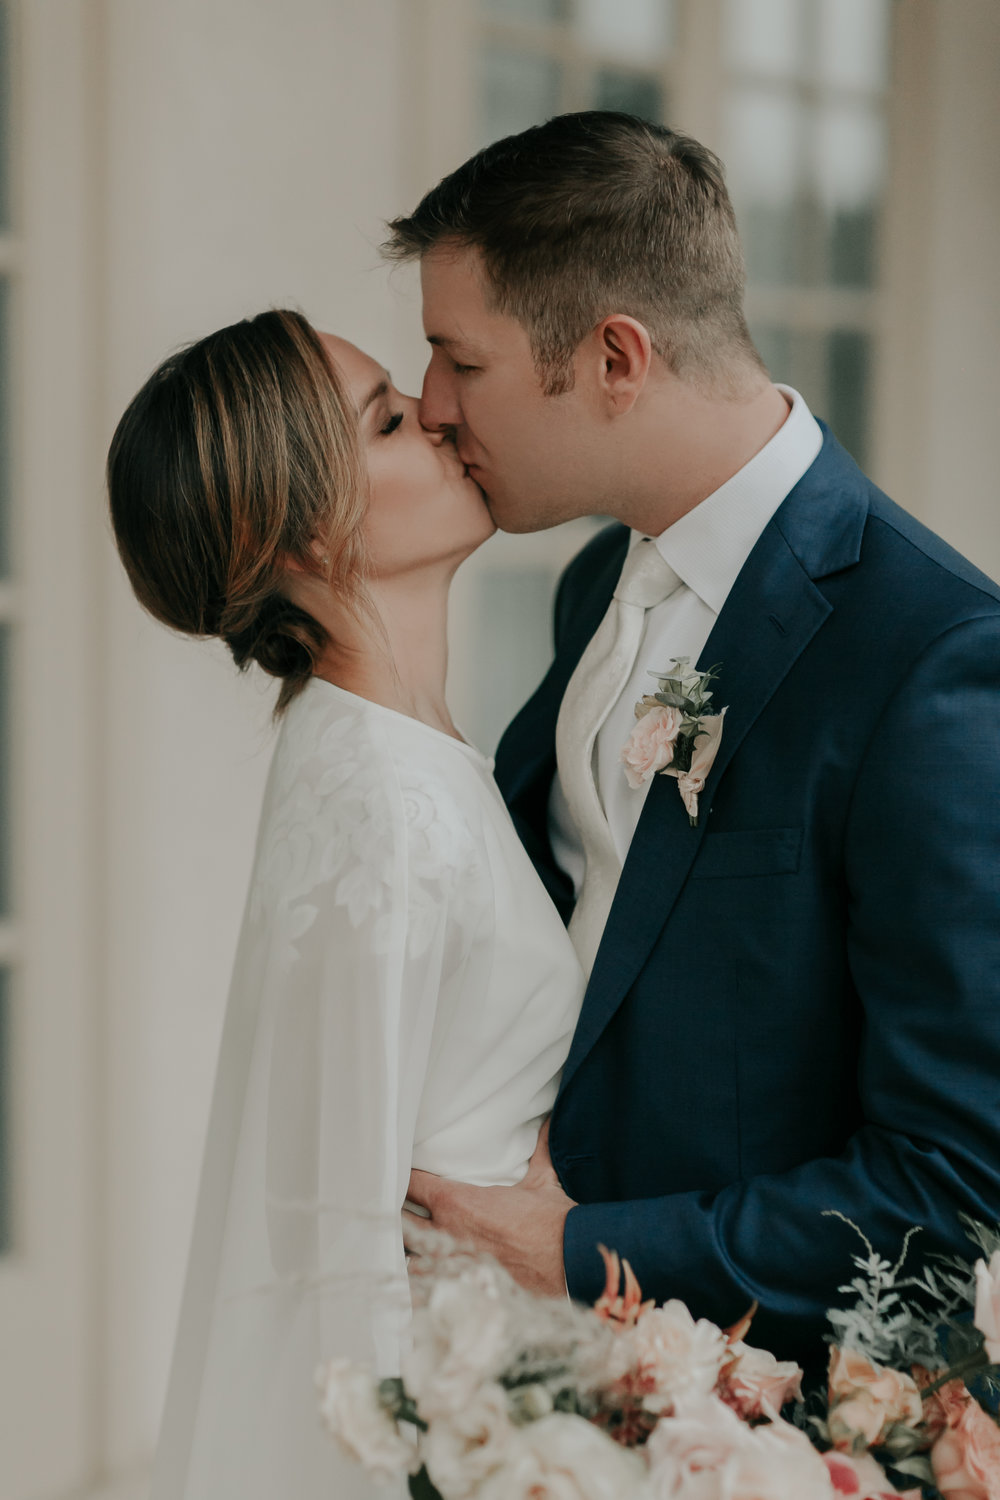 Bride+Groom10.13.18-43.jpg